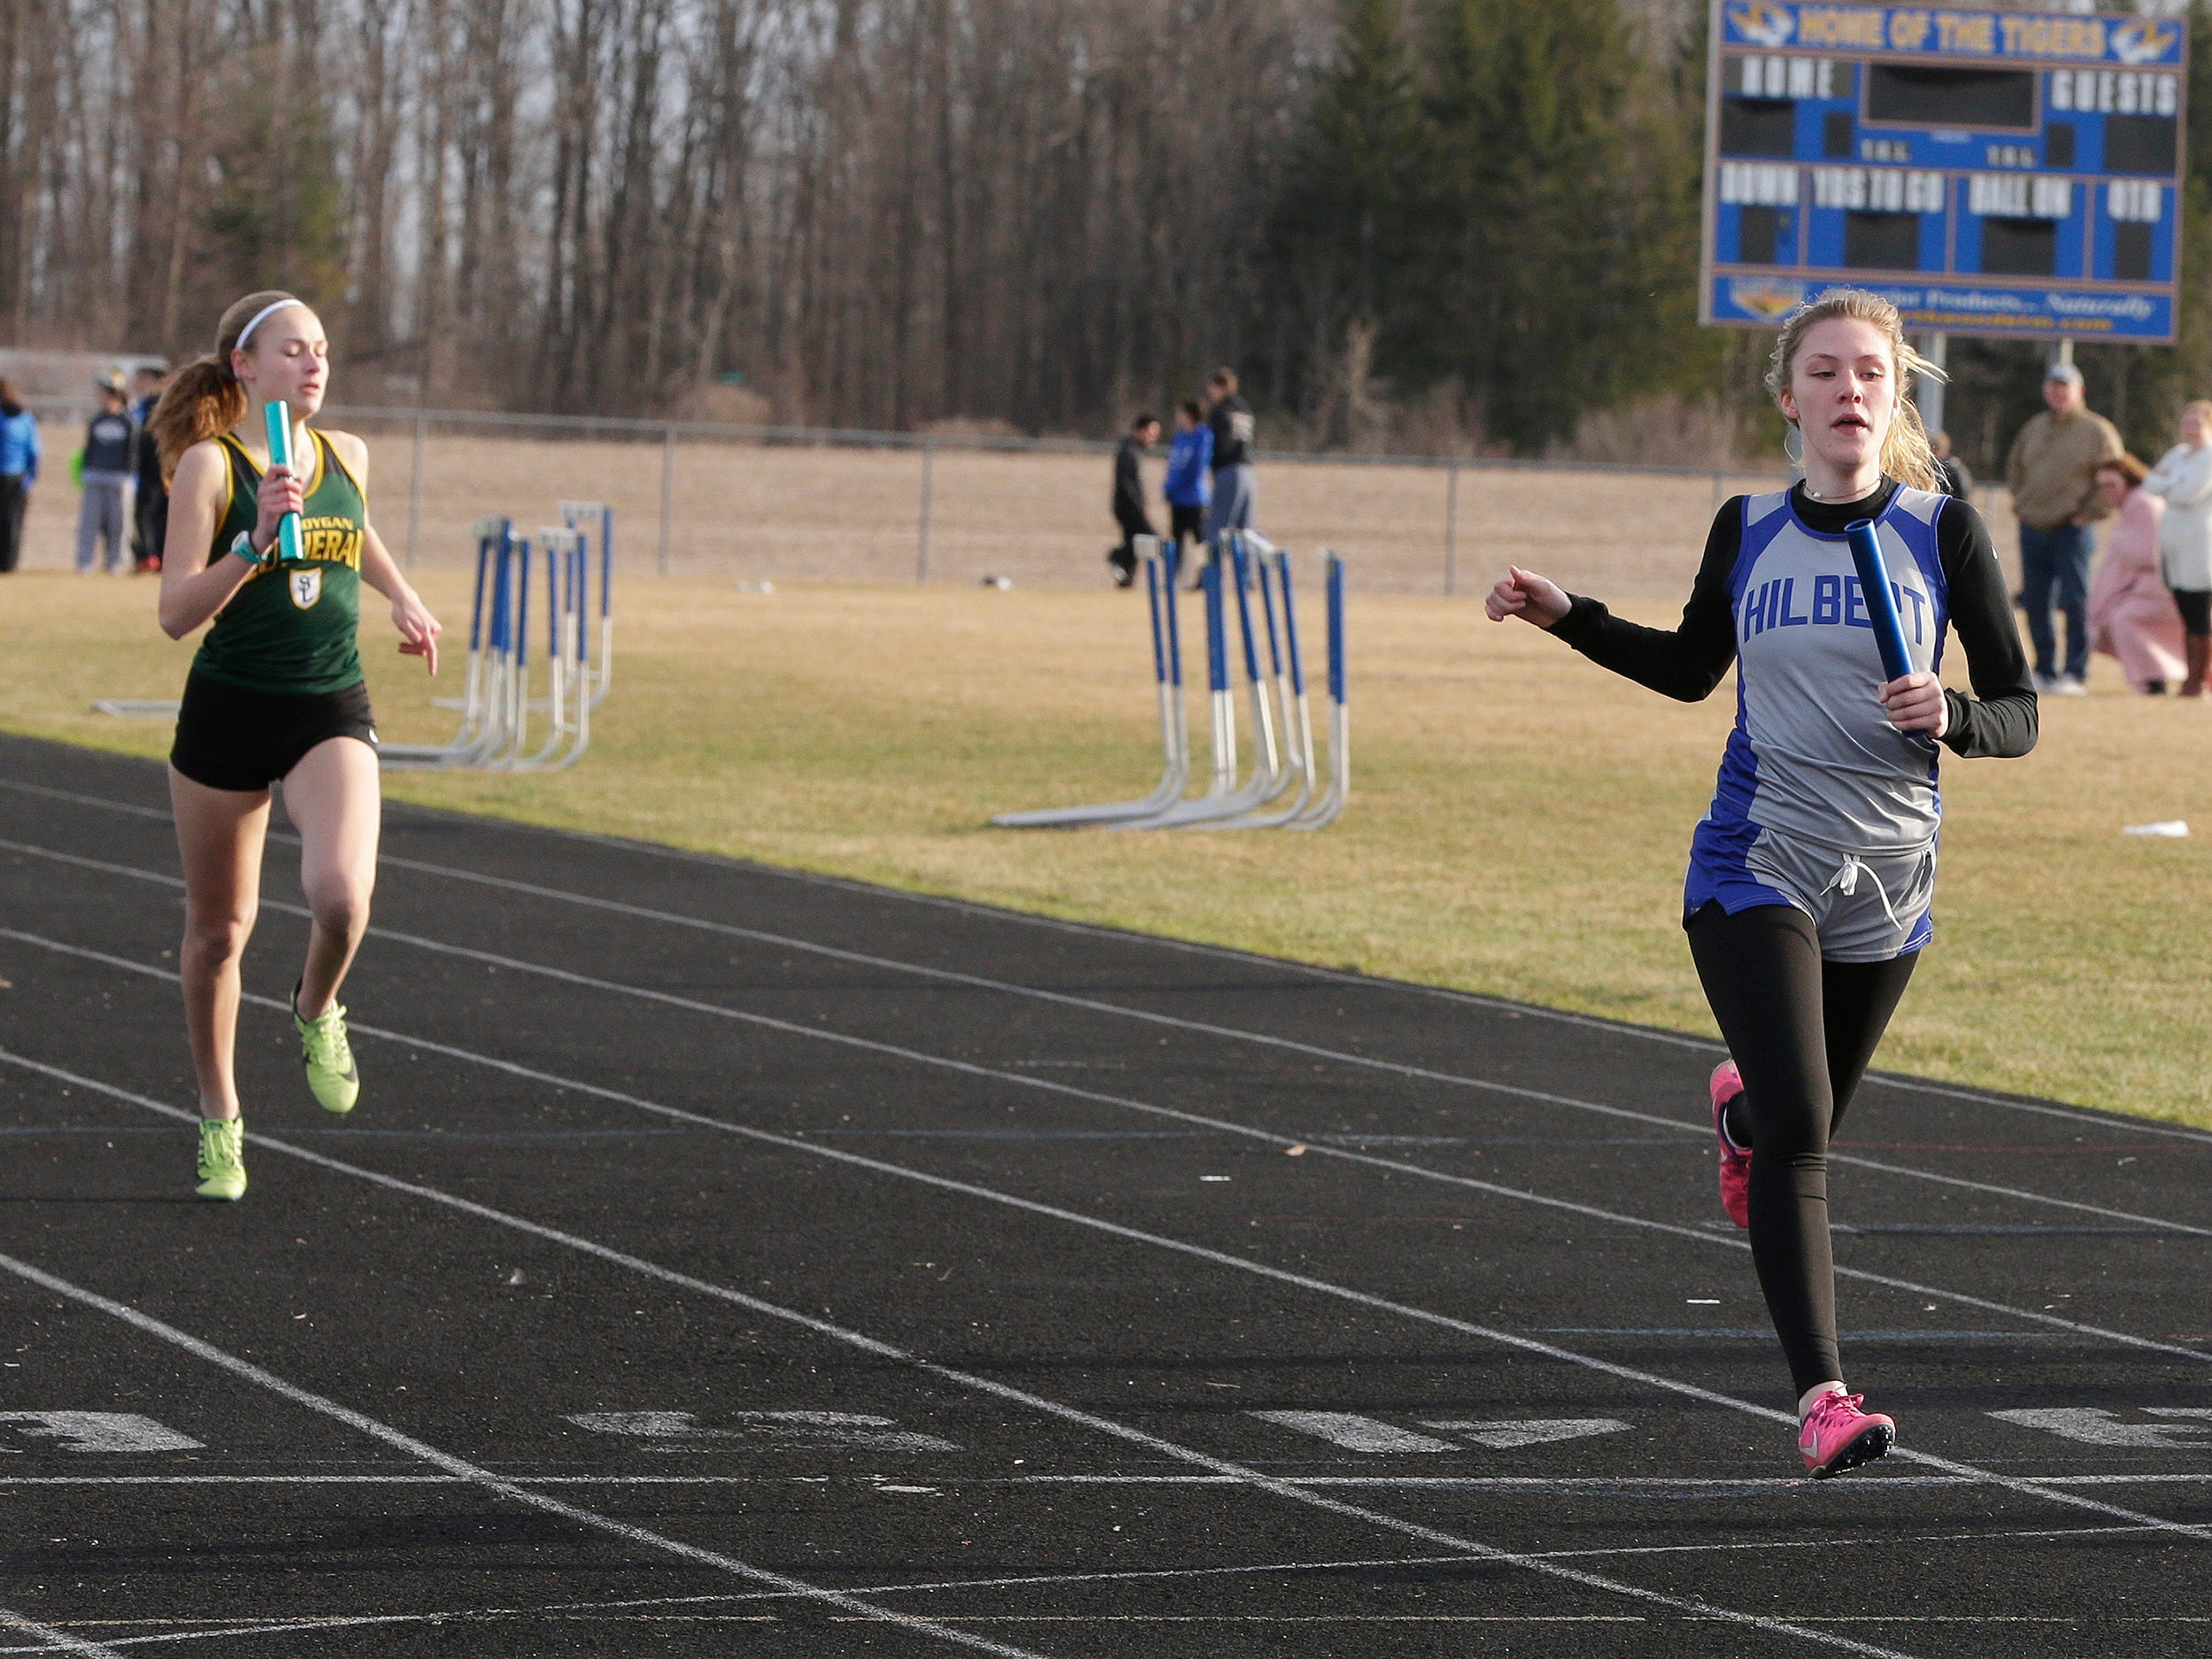 Courtney Gehl, right, crosses the finish line during the 4 X 200 at the Howards Grove track meet, Tuesday, April 9, 2019, in Howards, Wis.